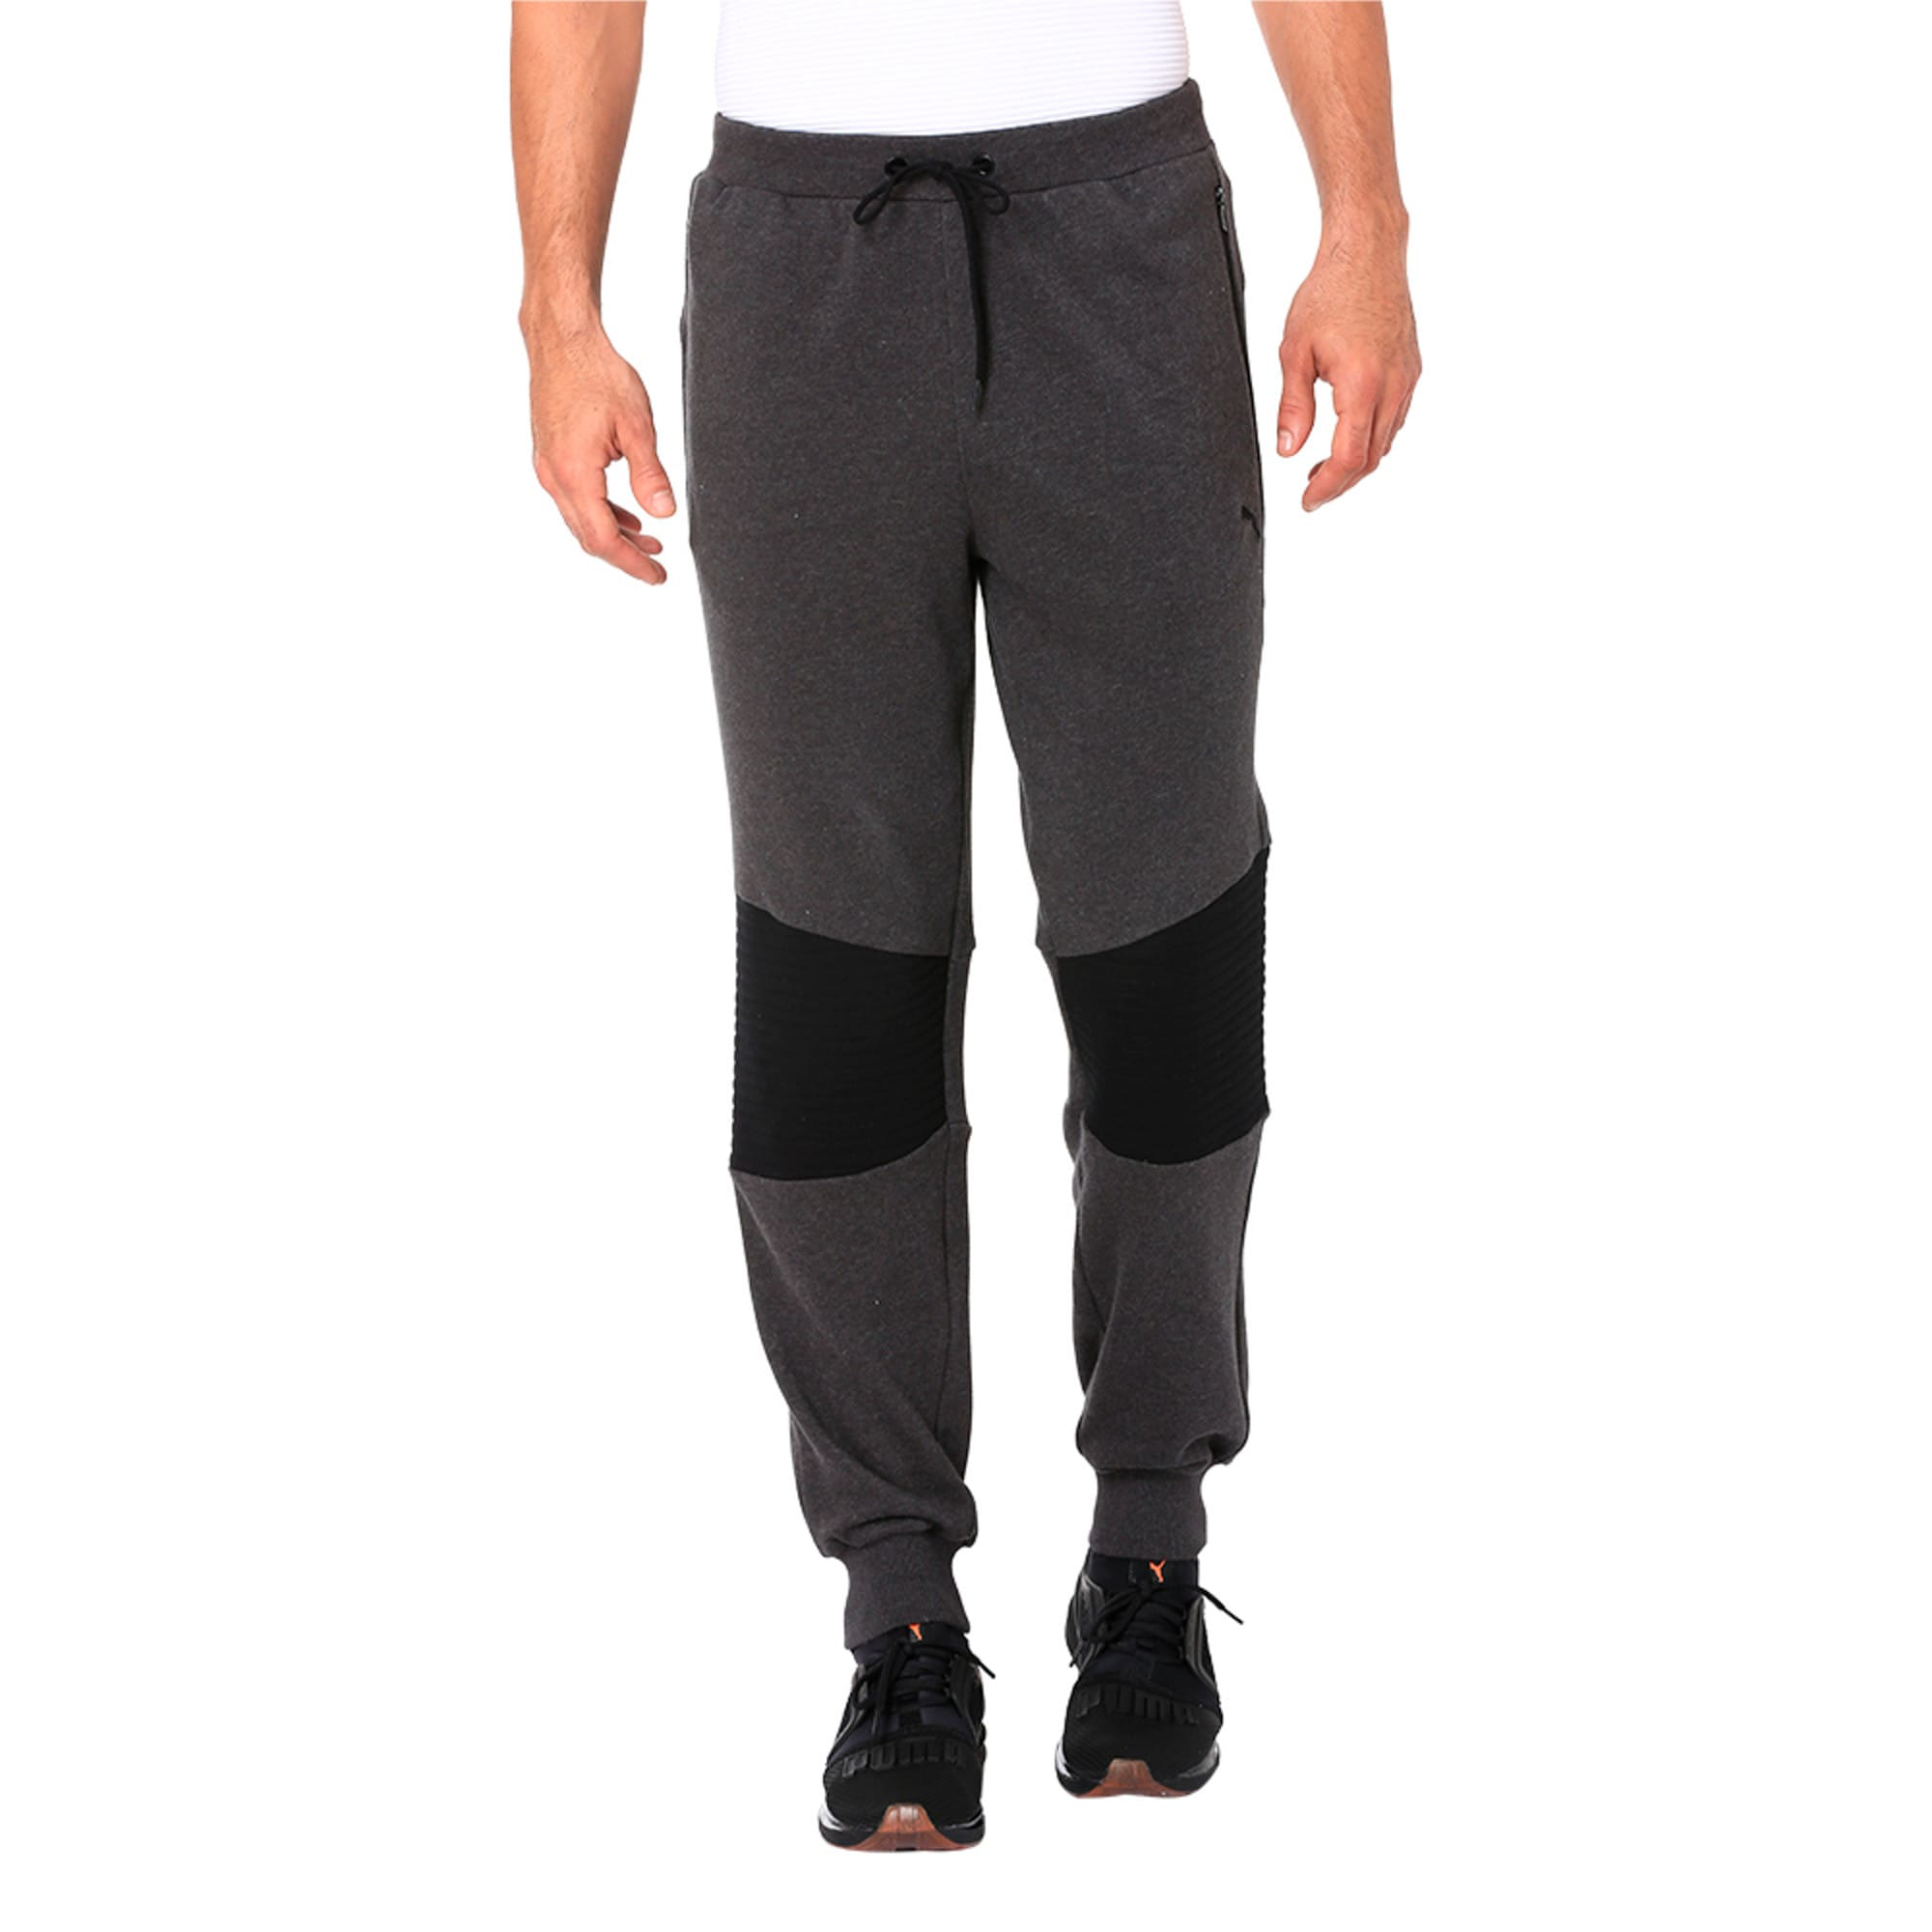 Thumbnail 4 of One8 VK Men's Sweat Pants, Dark Gray Heather, medium-IND